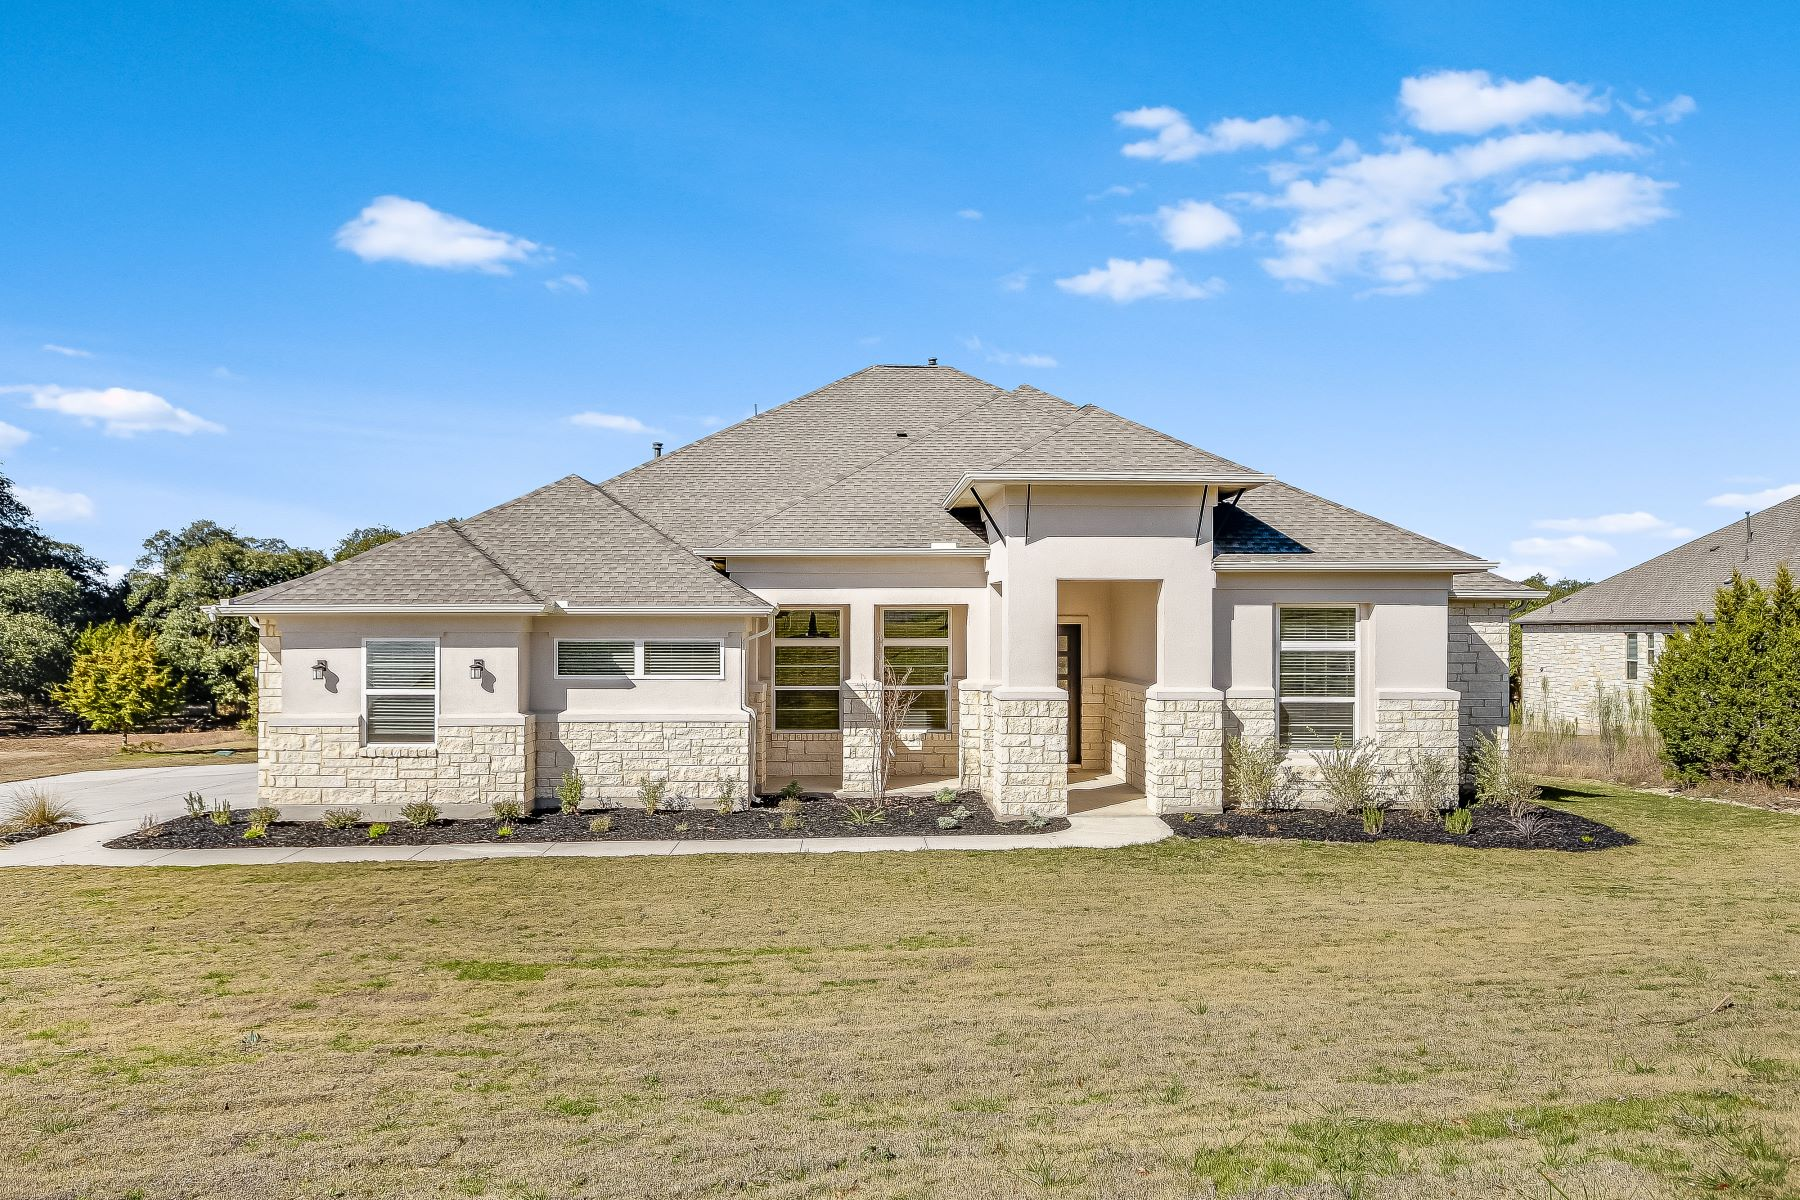 Single Family Homes for Active at 260 Hawthorne Loop, Driftwood, TX 78619 260 Hawthorne Loop Driftwood, Texas 78619 United States